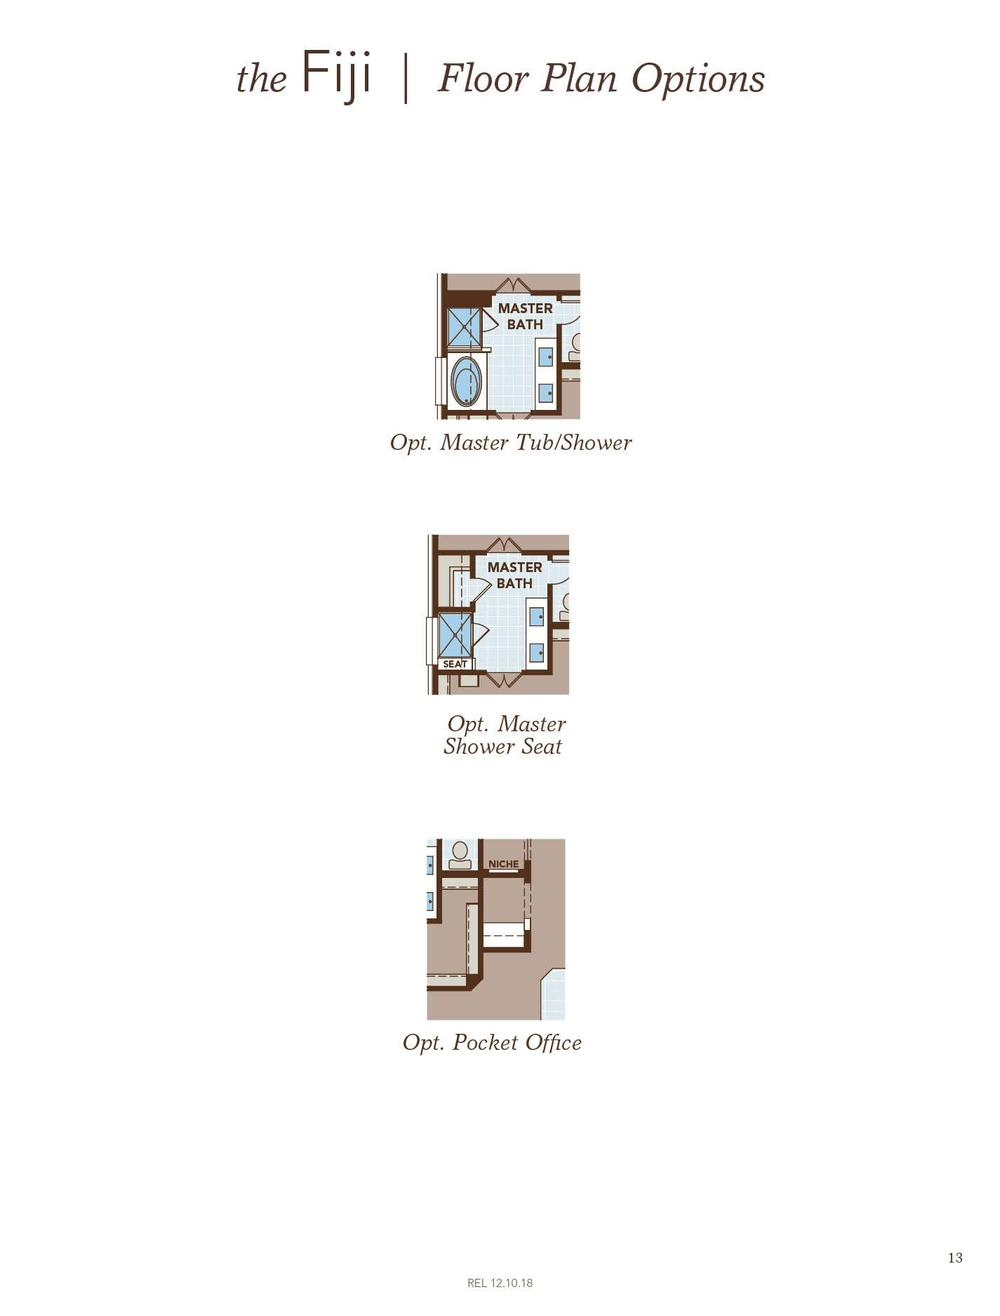 Fiji Floor Plan Options